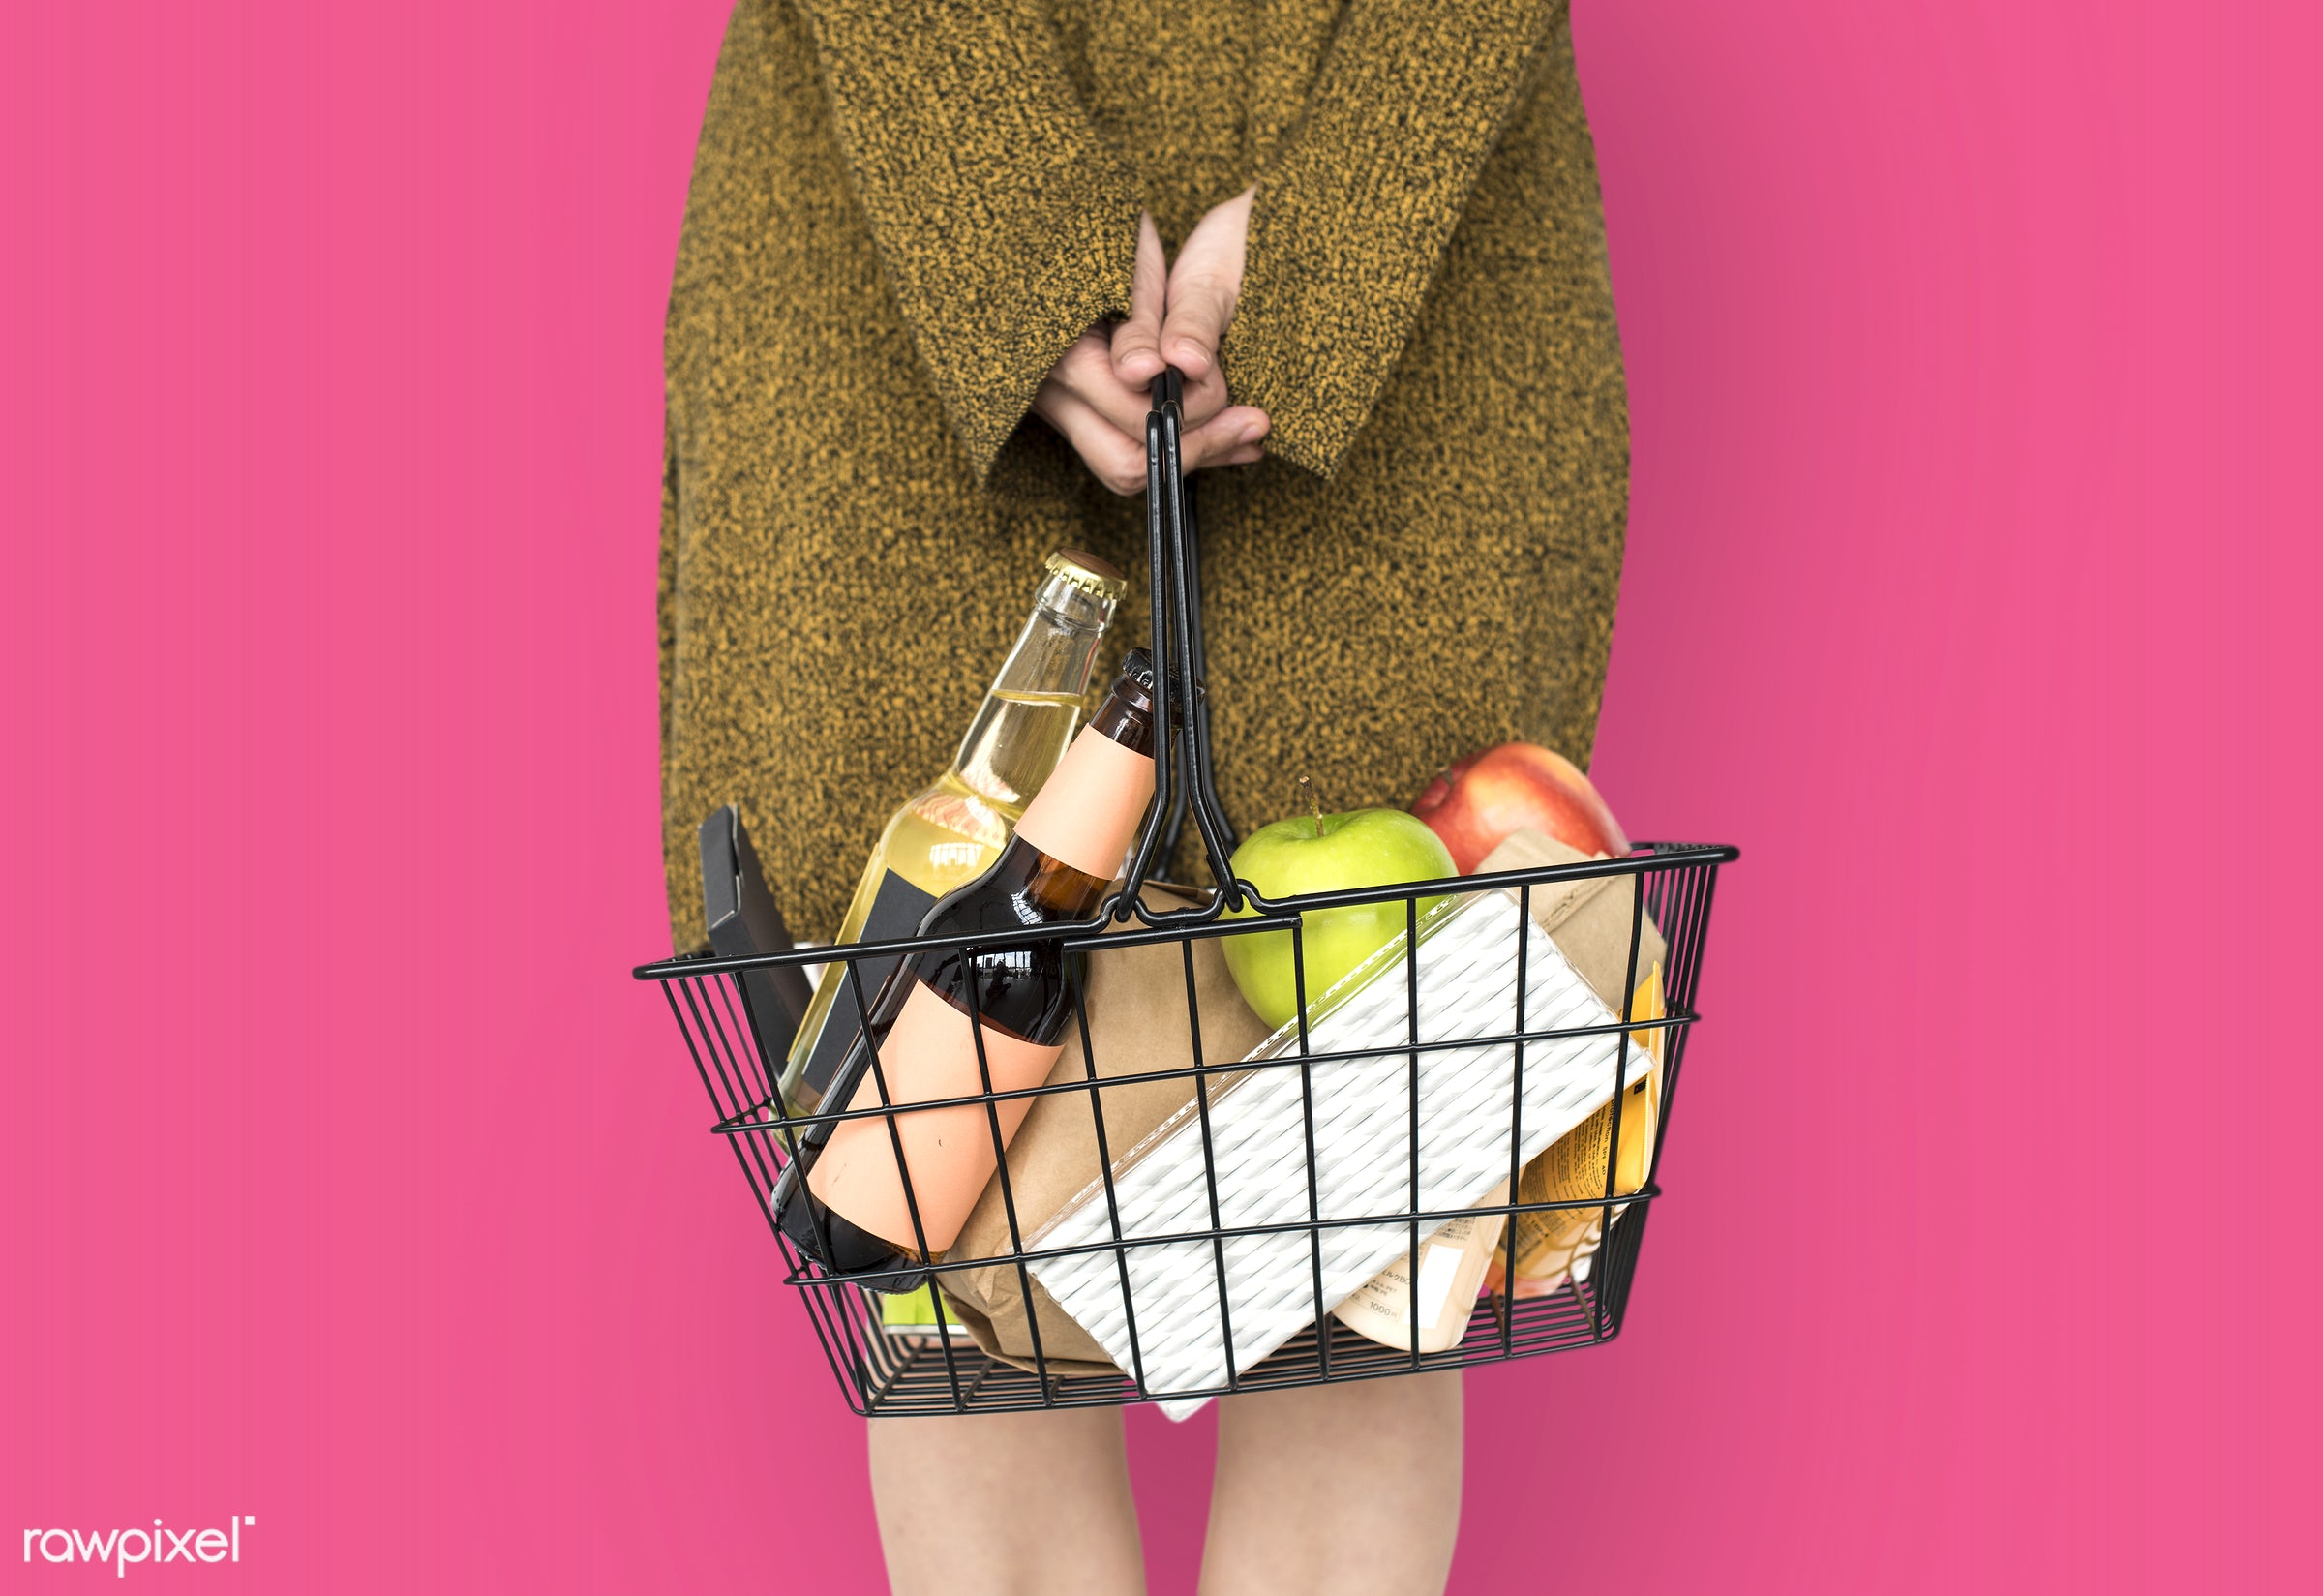 grocery, studio, person, goods, drinks, people, girl, carrying, solo, woman, casual, pink, wine, isolated, fruit, household...